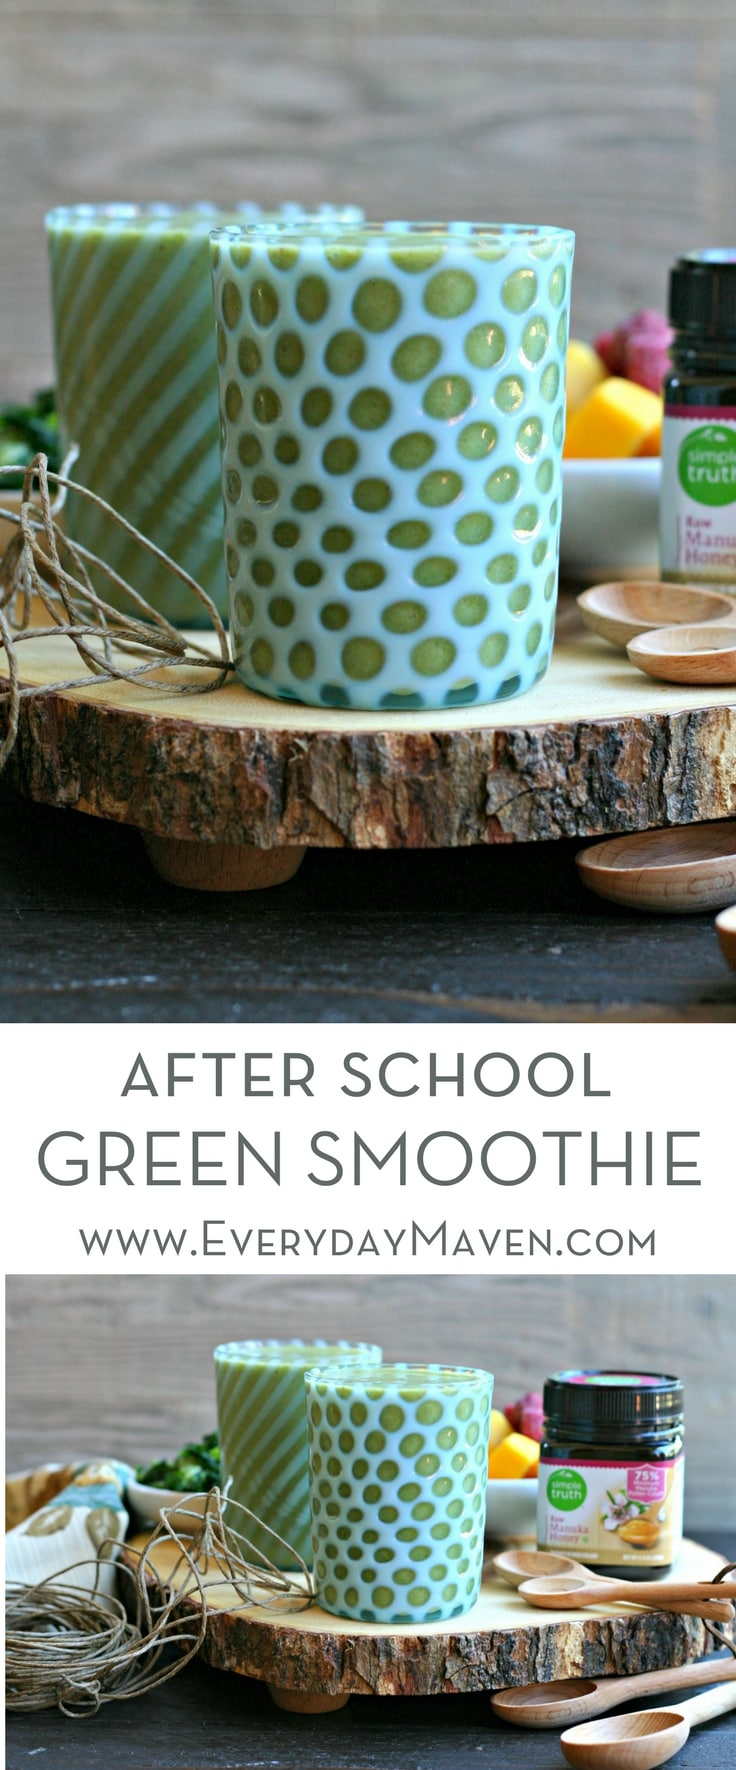 A kale packed green smoothie balanced out with frozen mango, raspberries, a touch of cinnamon and Manuka honey. The perfect After School Green Smoothie that both kids and adults alike will be exited for! Sponsored by QFC